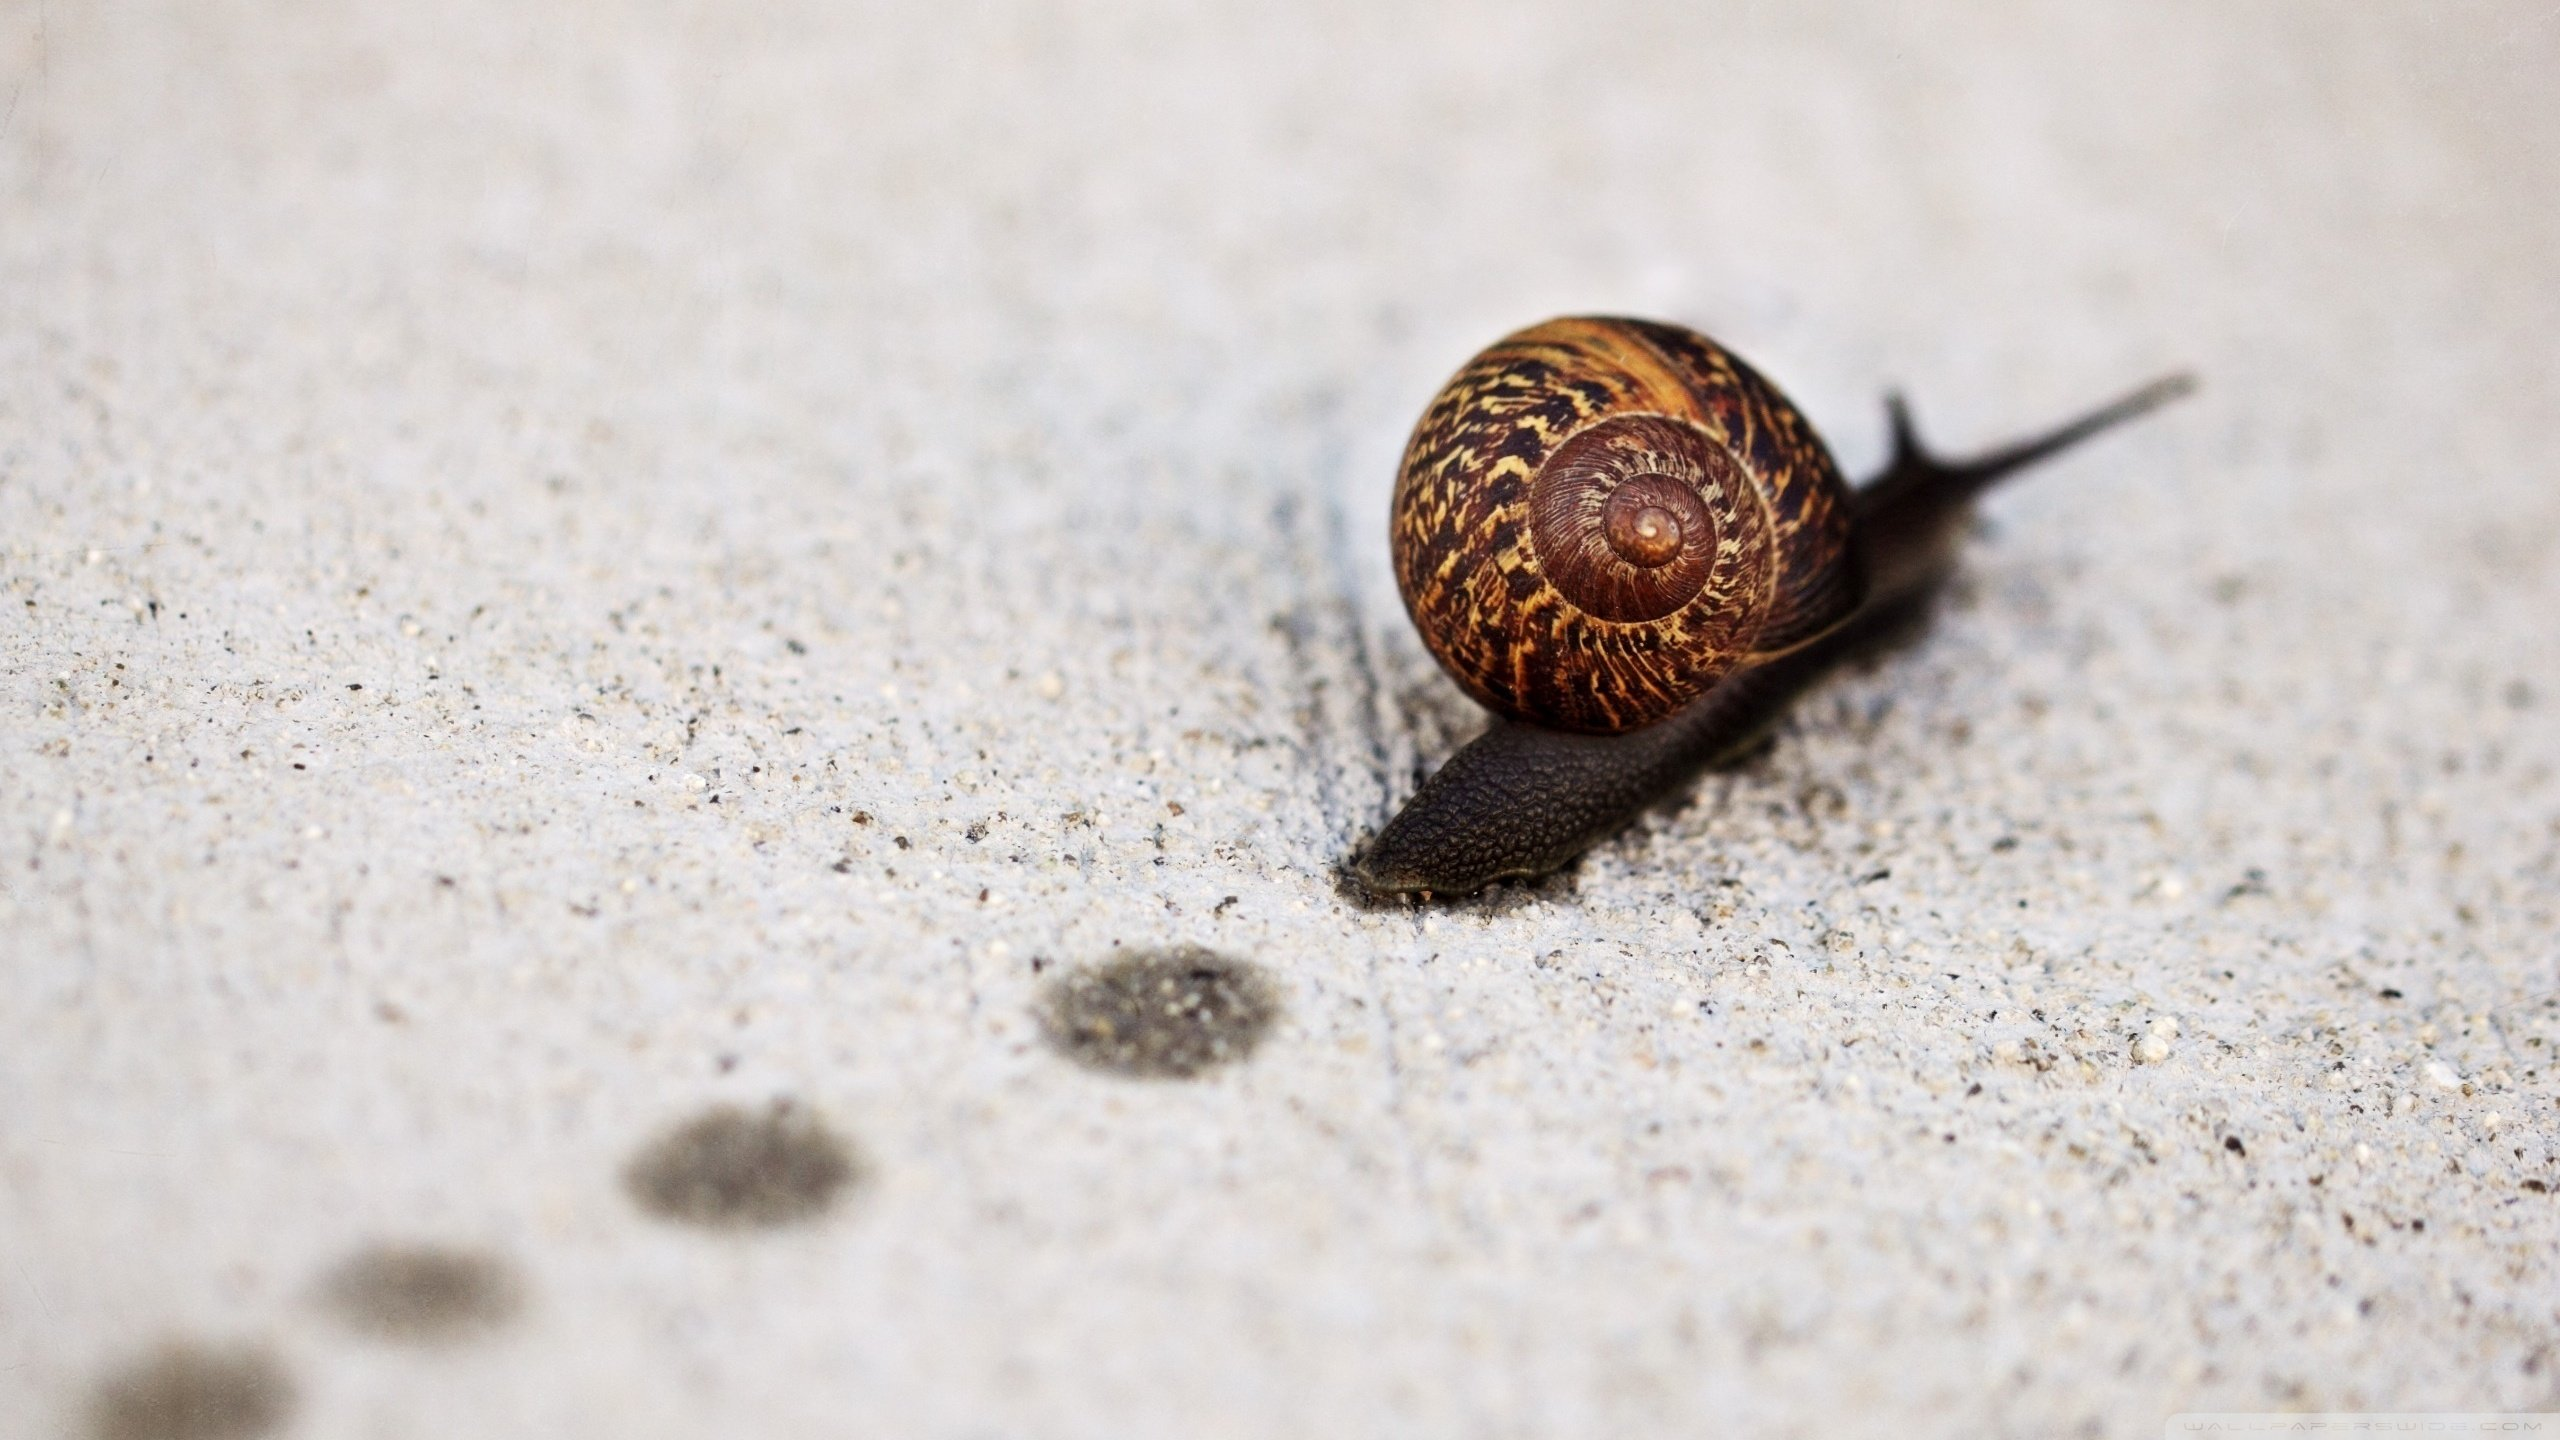 Free Snail high quality wallpaper ID:198819 for hd 2560x1440 PC